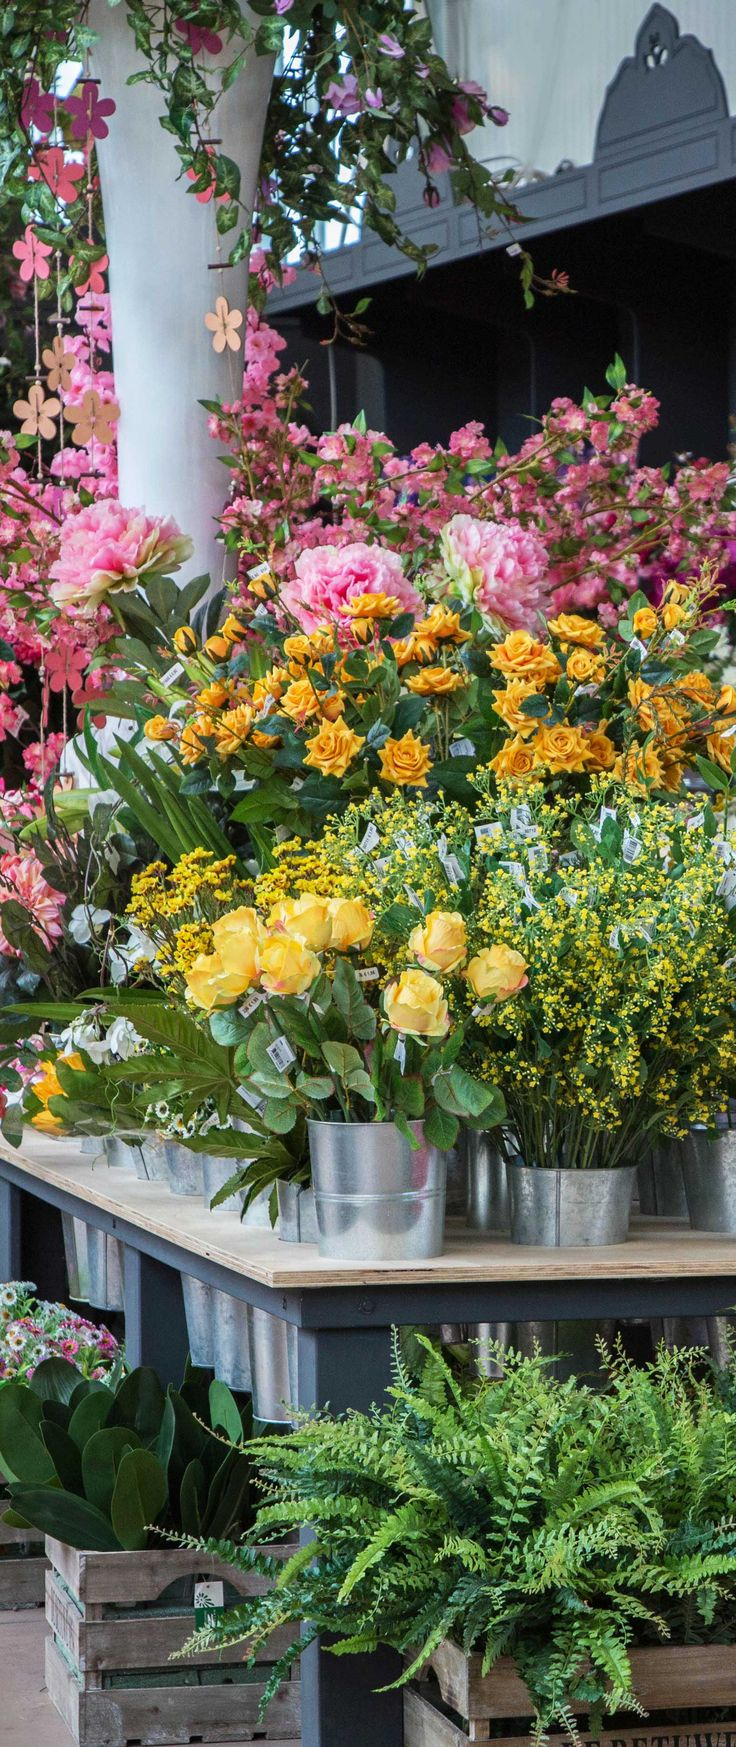 The only thing missing is the scent: discover our artificial flowers. #decor #artificialflowers